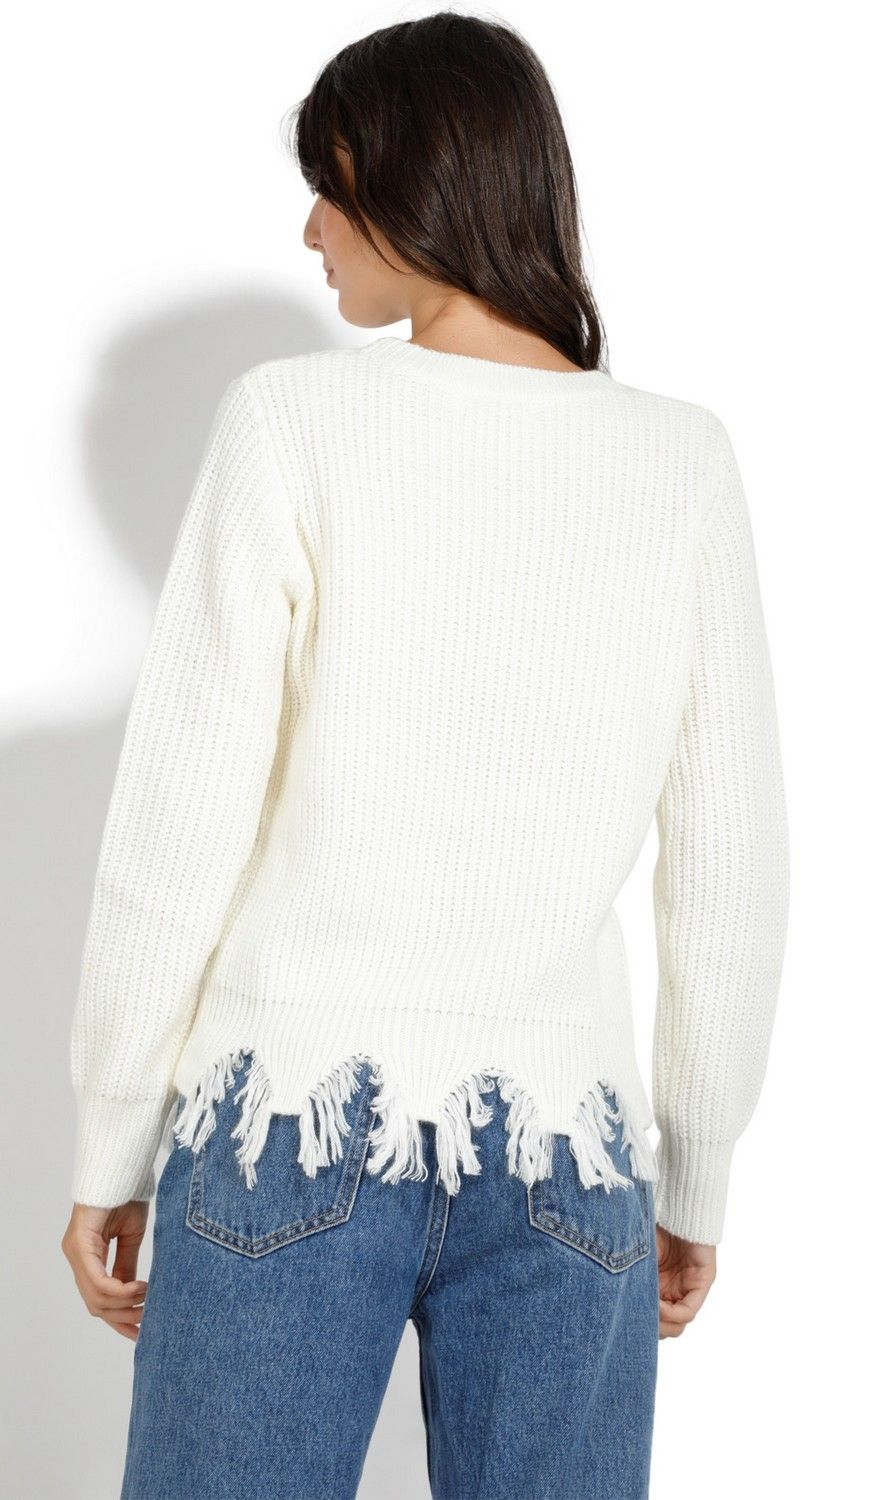 Assuili Crew Neck Ribbed Sweater with Distressed Hem in Natural